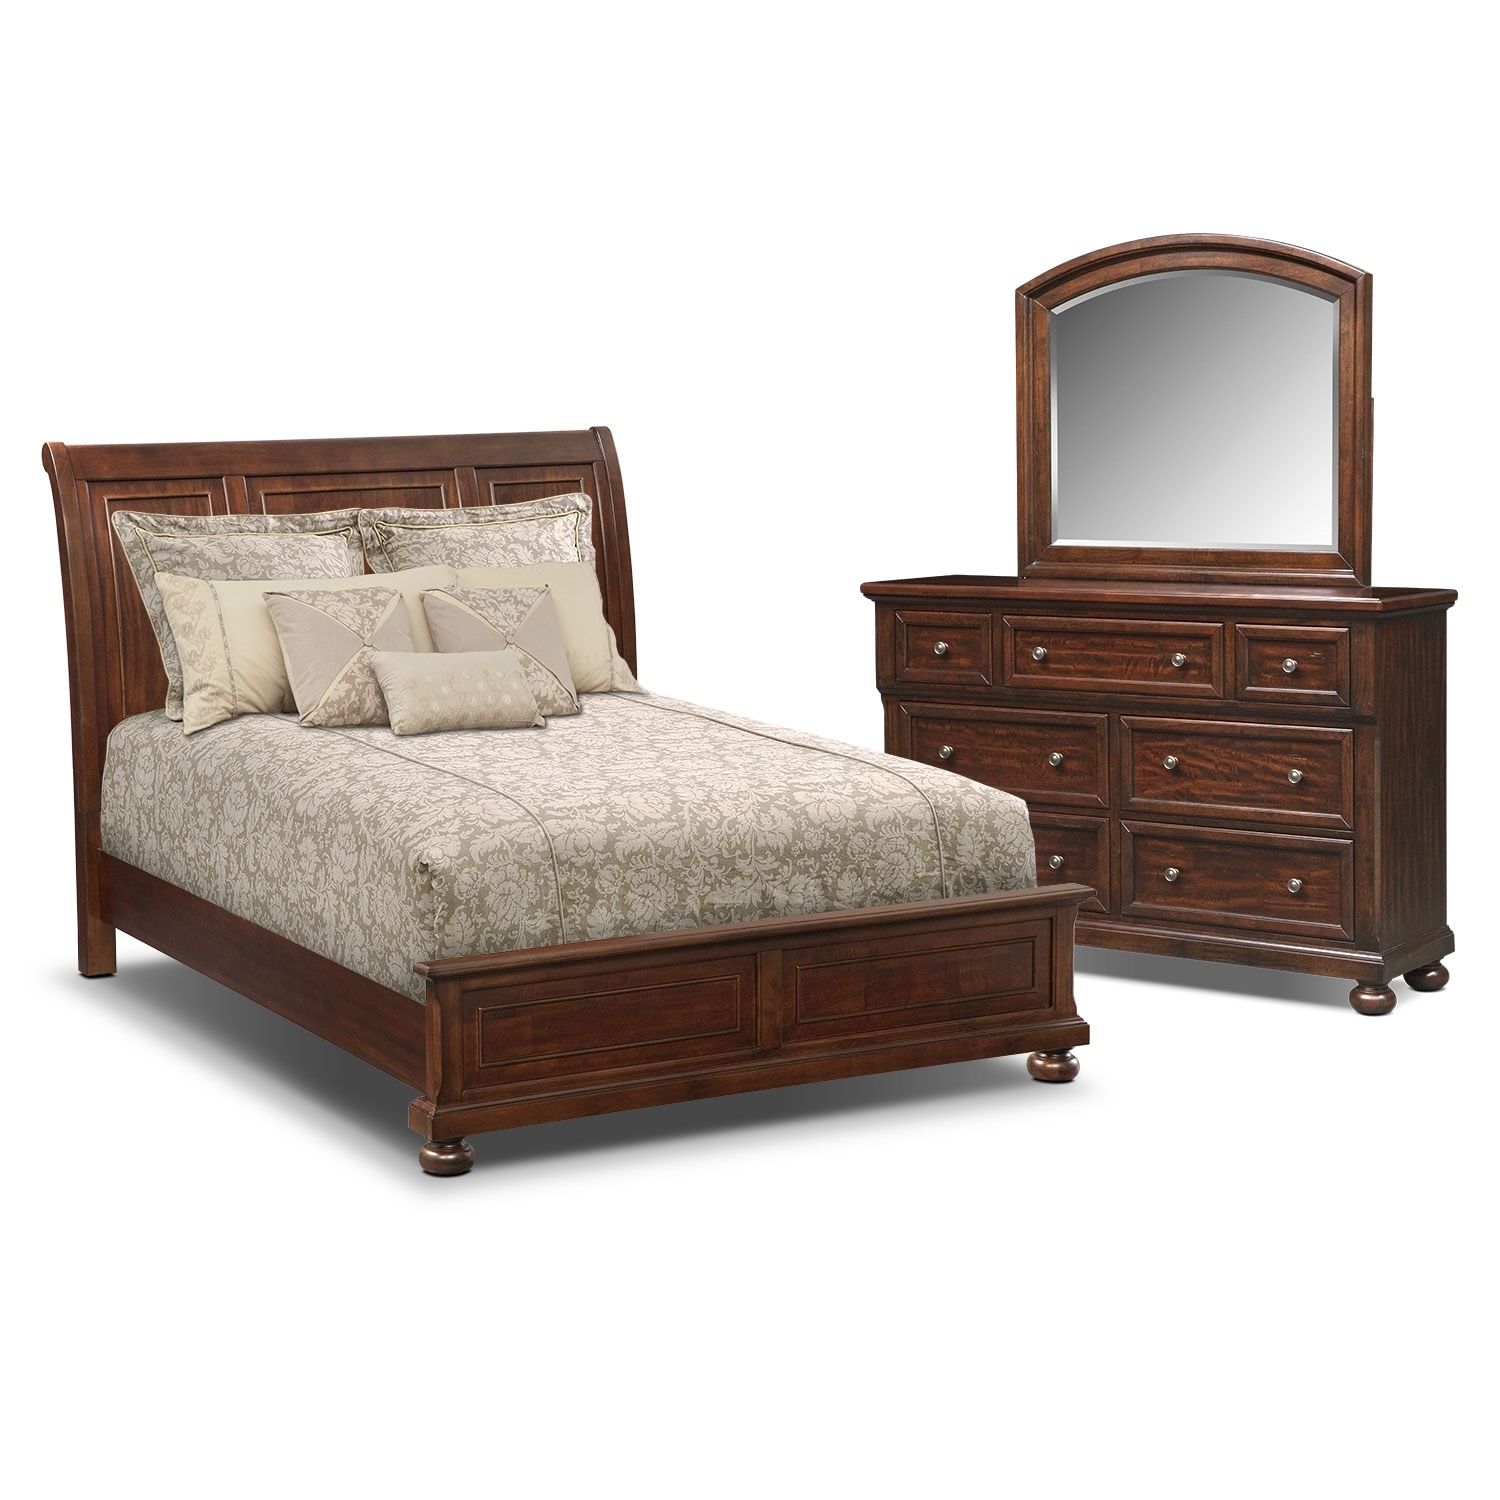 bedroom furniture hanover 5 piece king panel bedroom set cherry